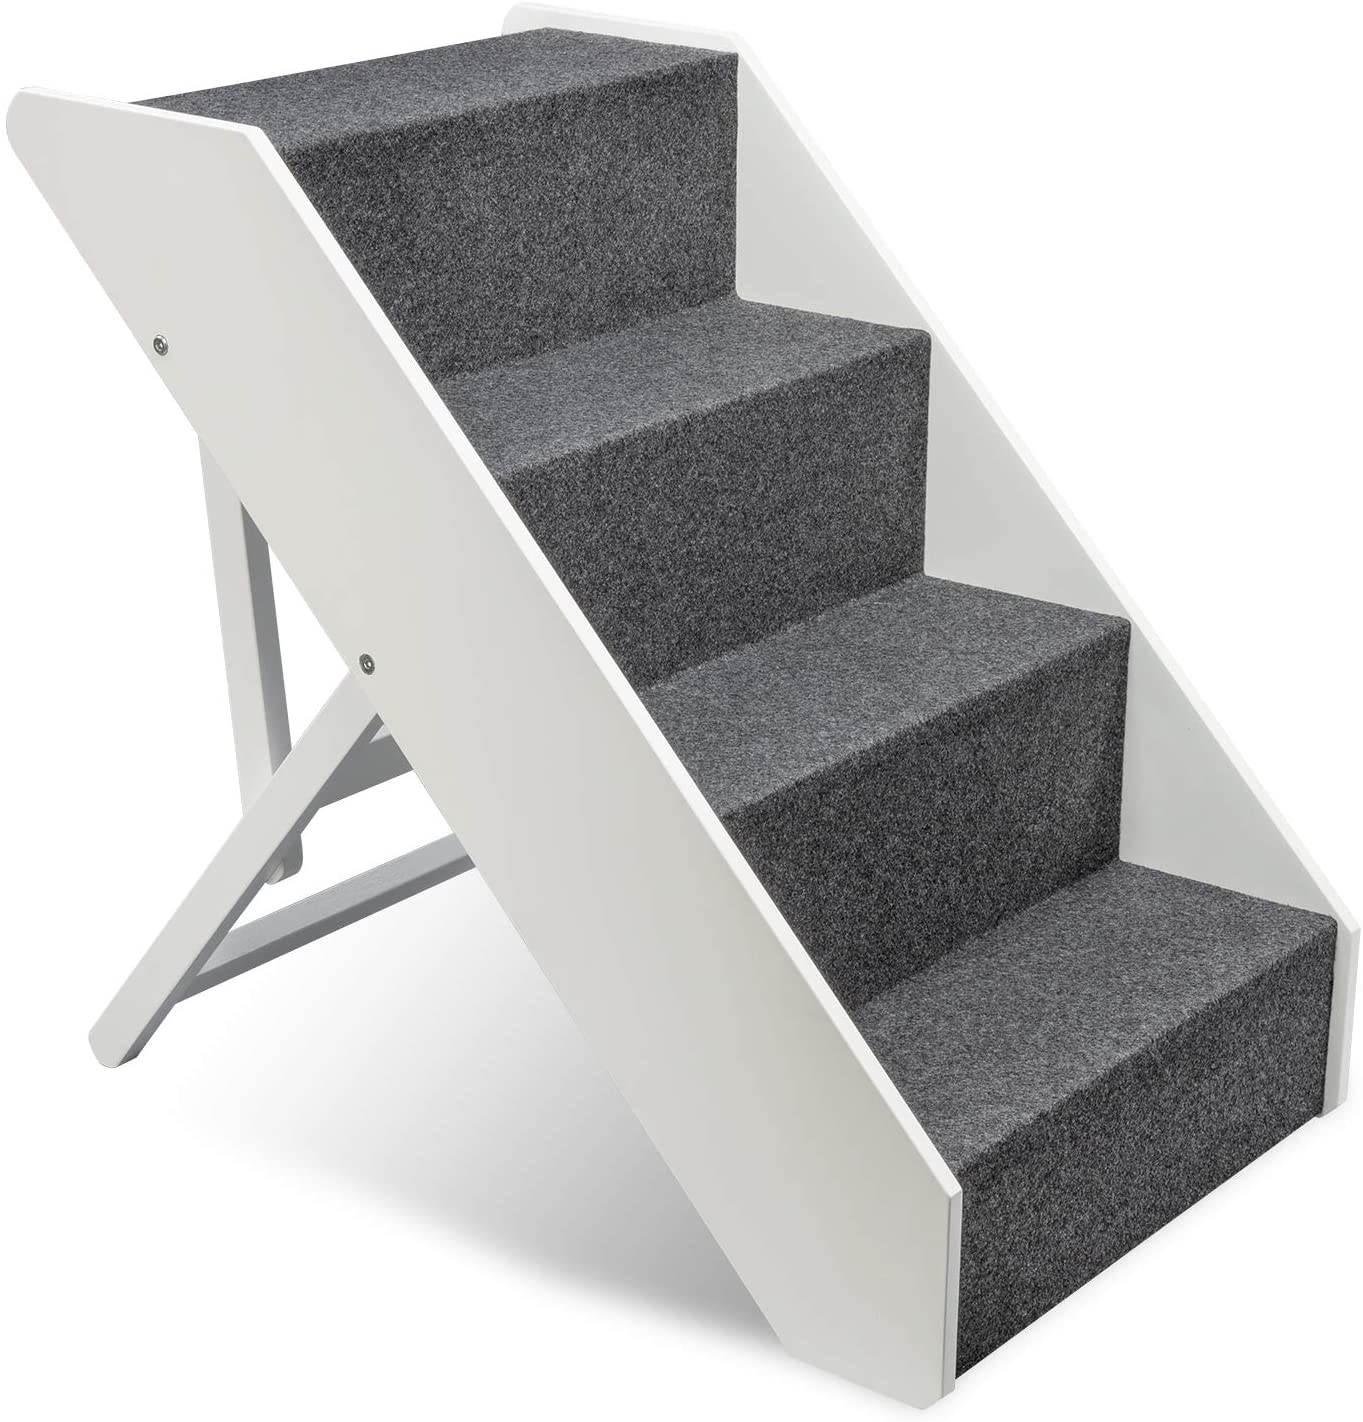 Arf Pets Dog Stairs review